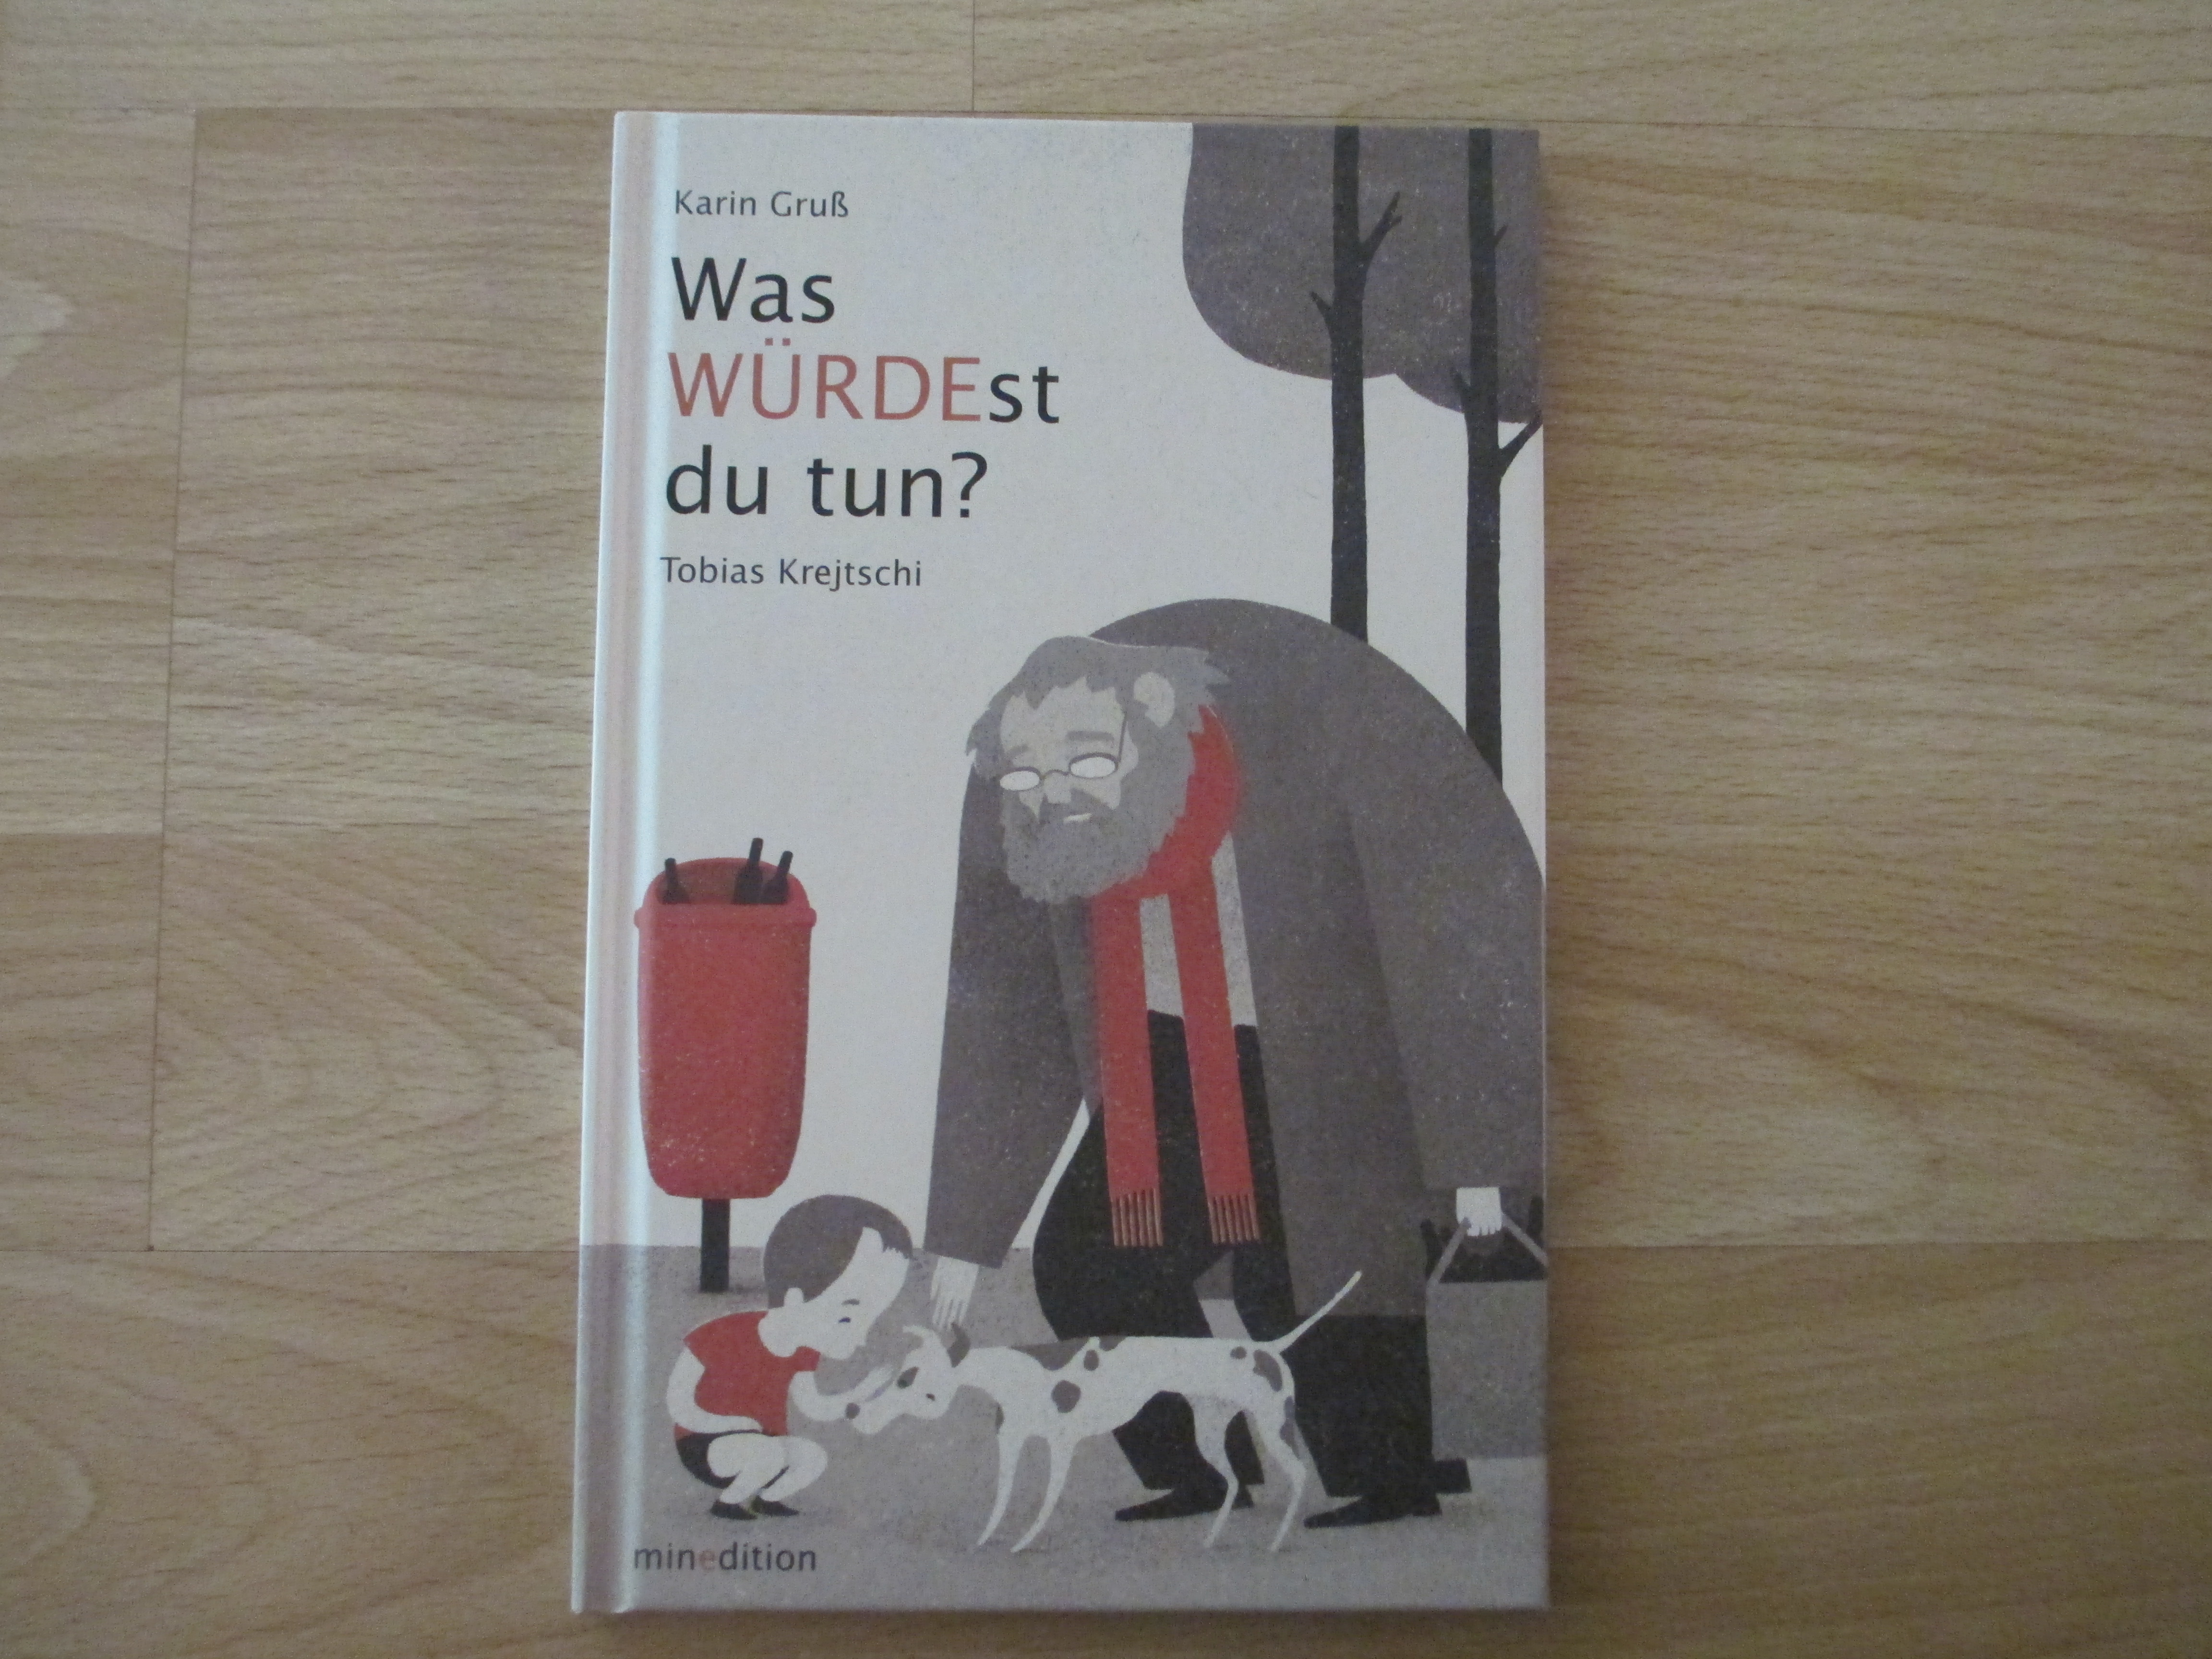 Was WÜRDEst du tun? Book Cover